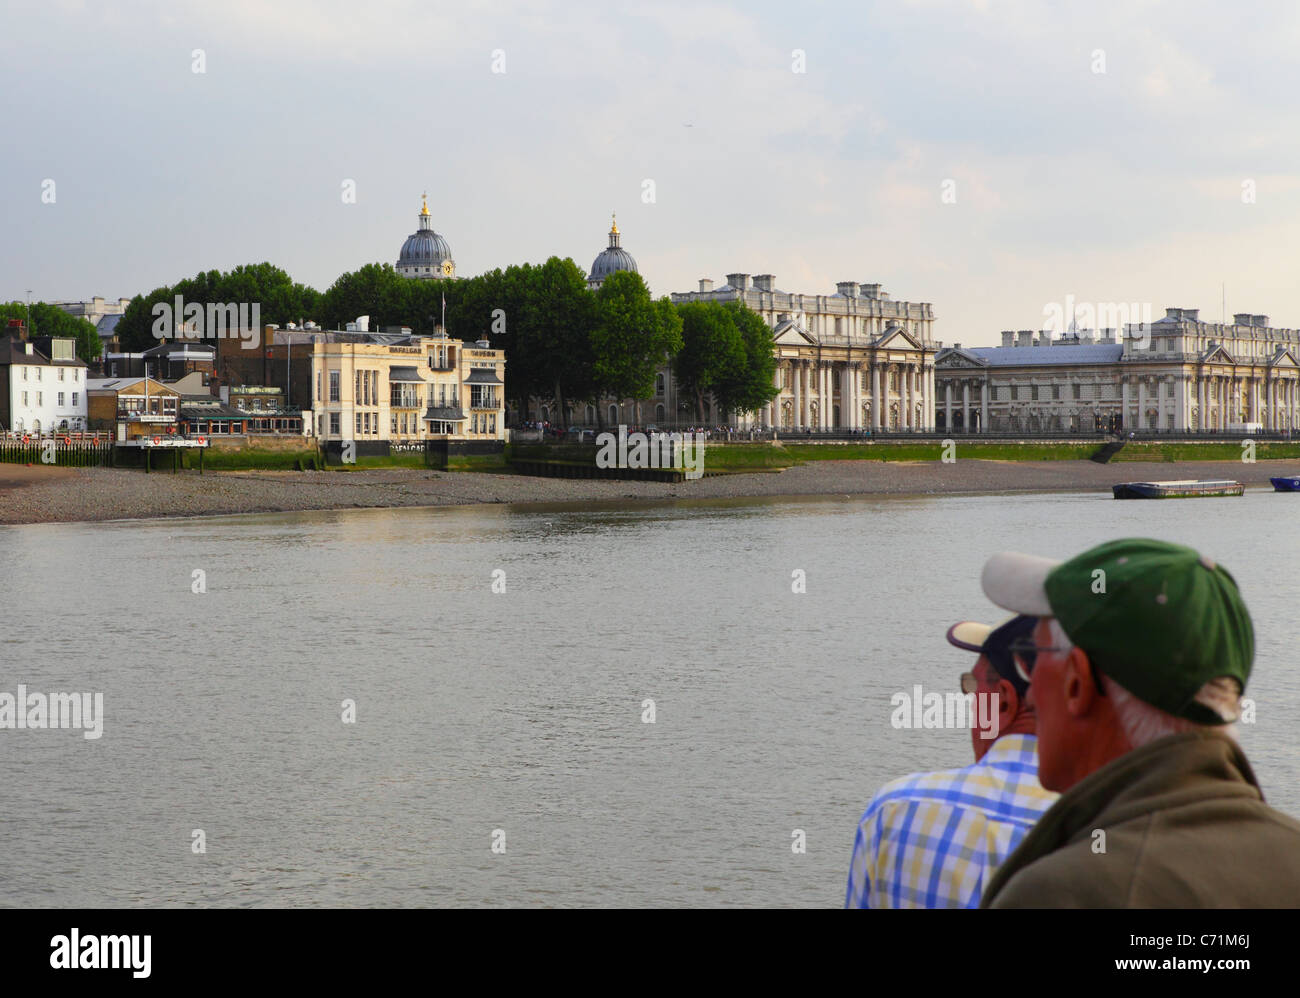 Tourists on River Thames Cruise looking across to the Trafalgar Tavern and Greenwich Maritime Museum, East London, - Stock Image